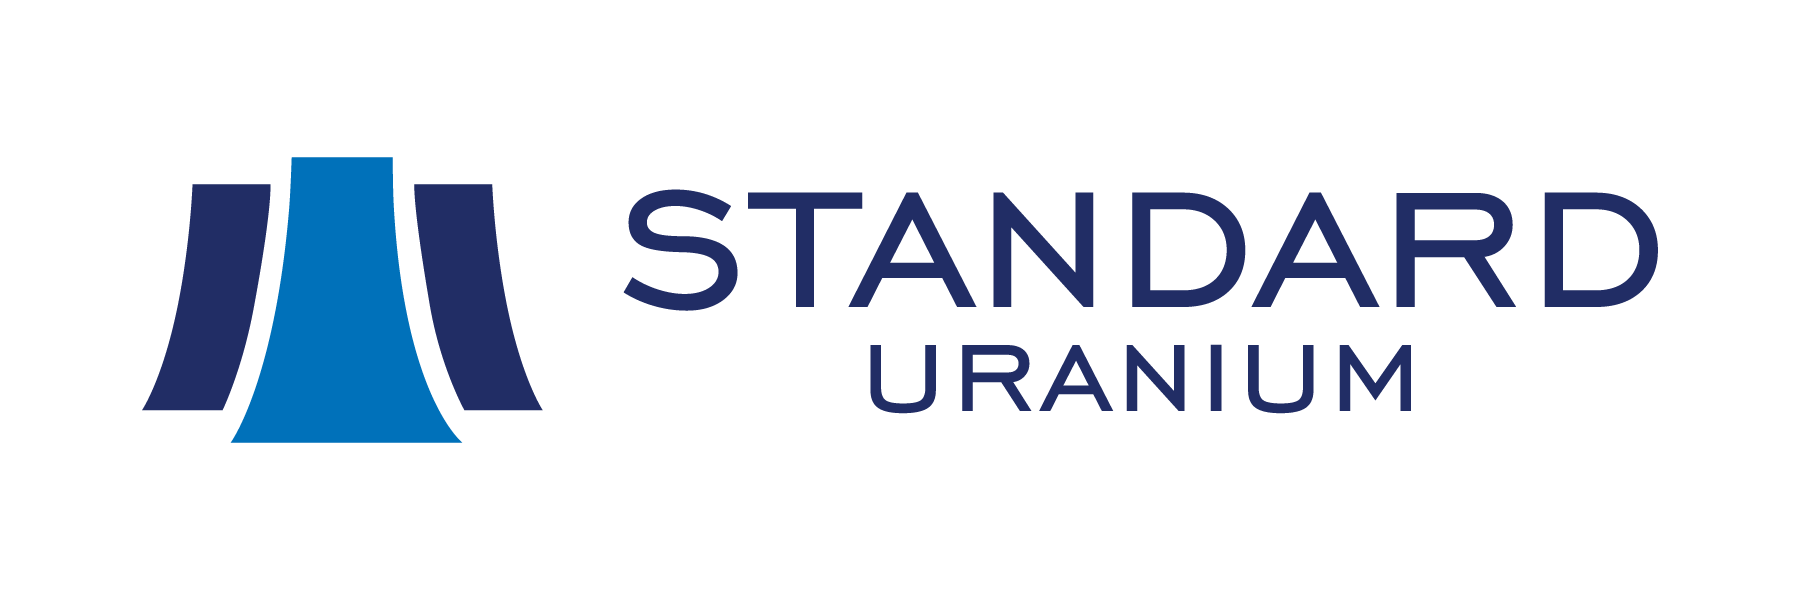 Standard Uranium to Commence Trading on the TSX Venture Exchange